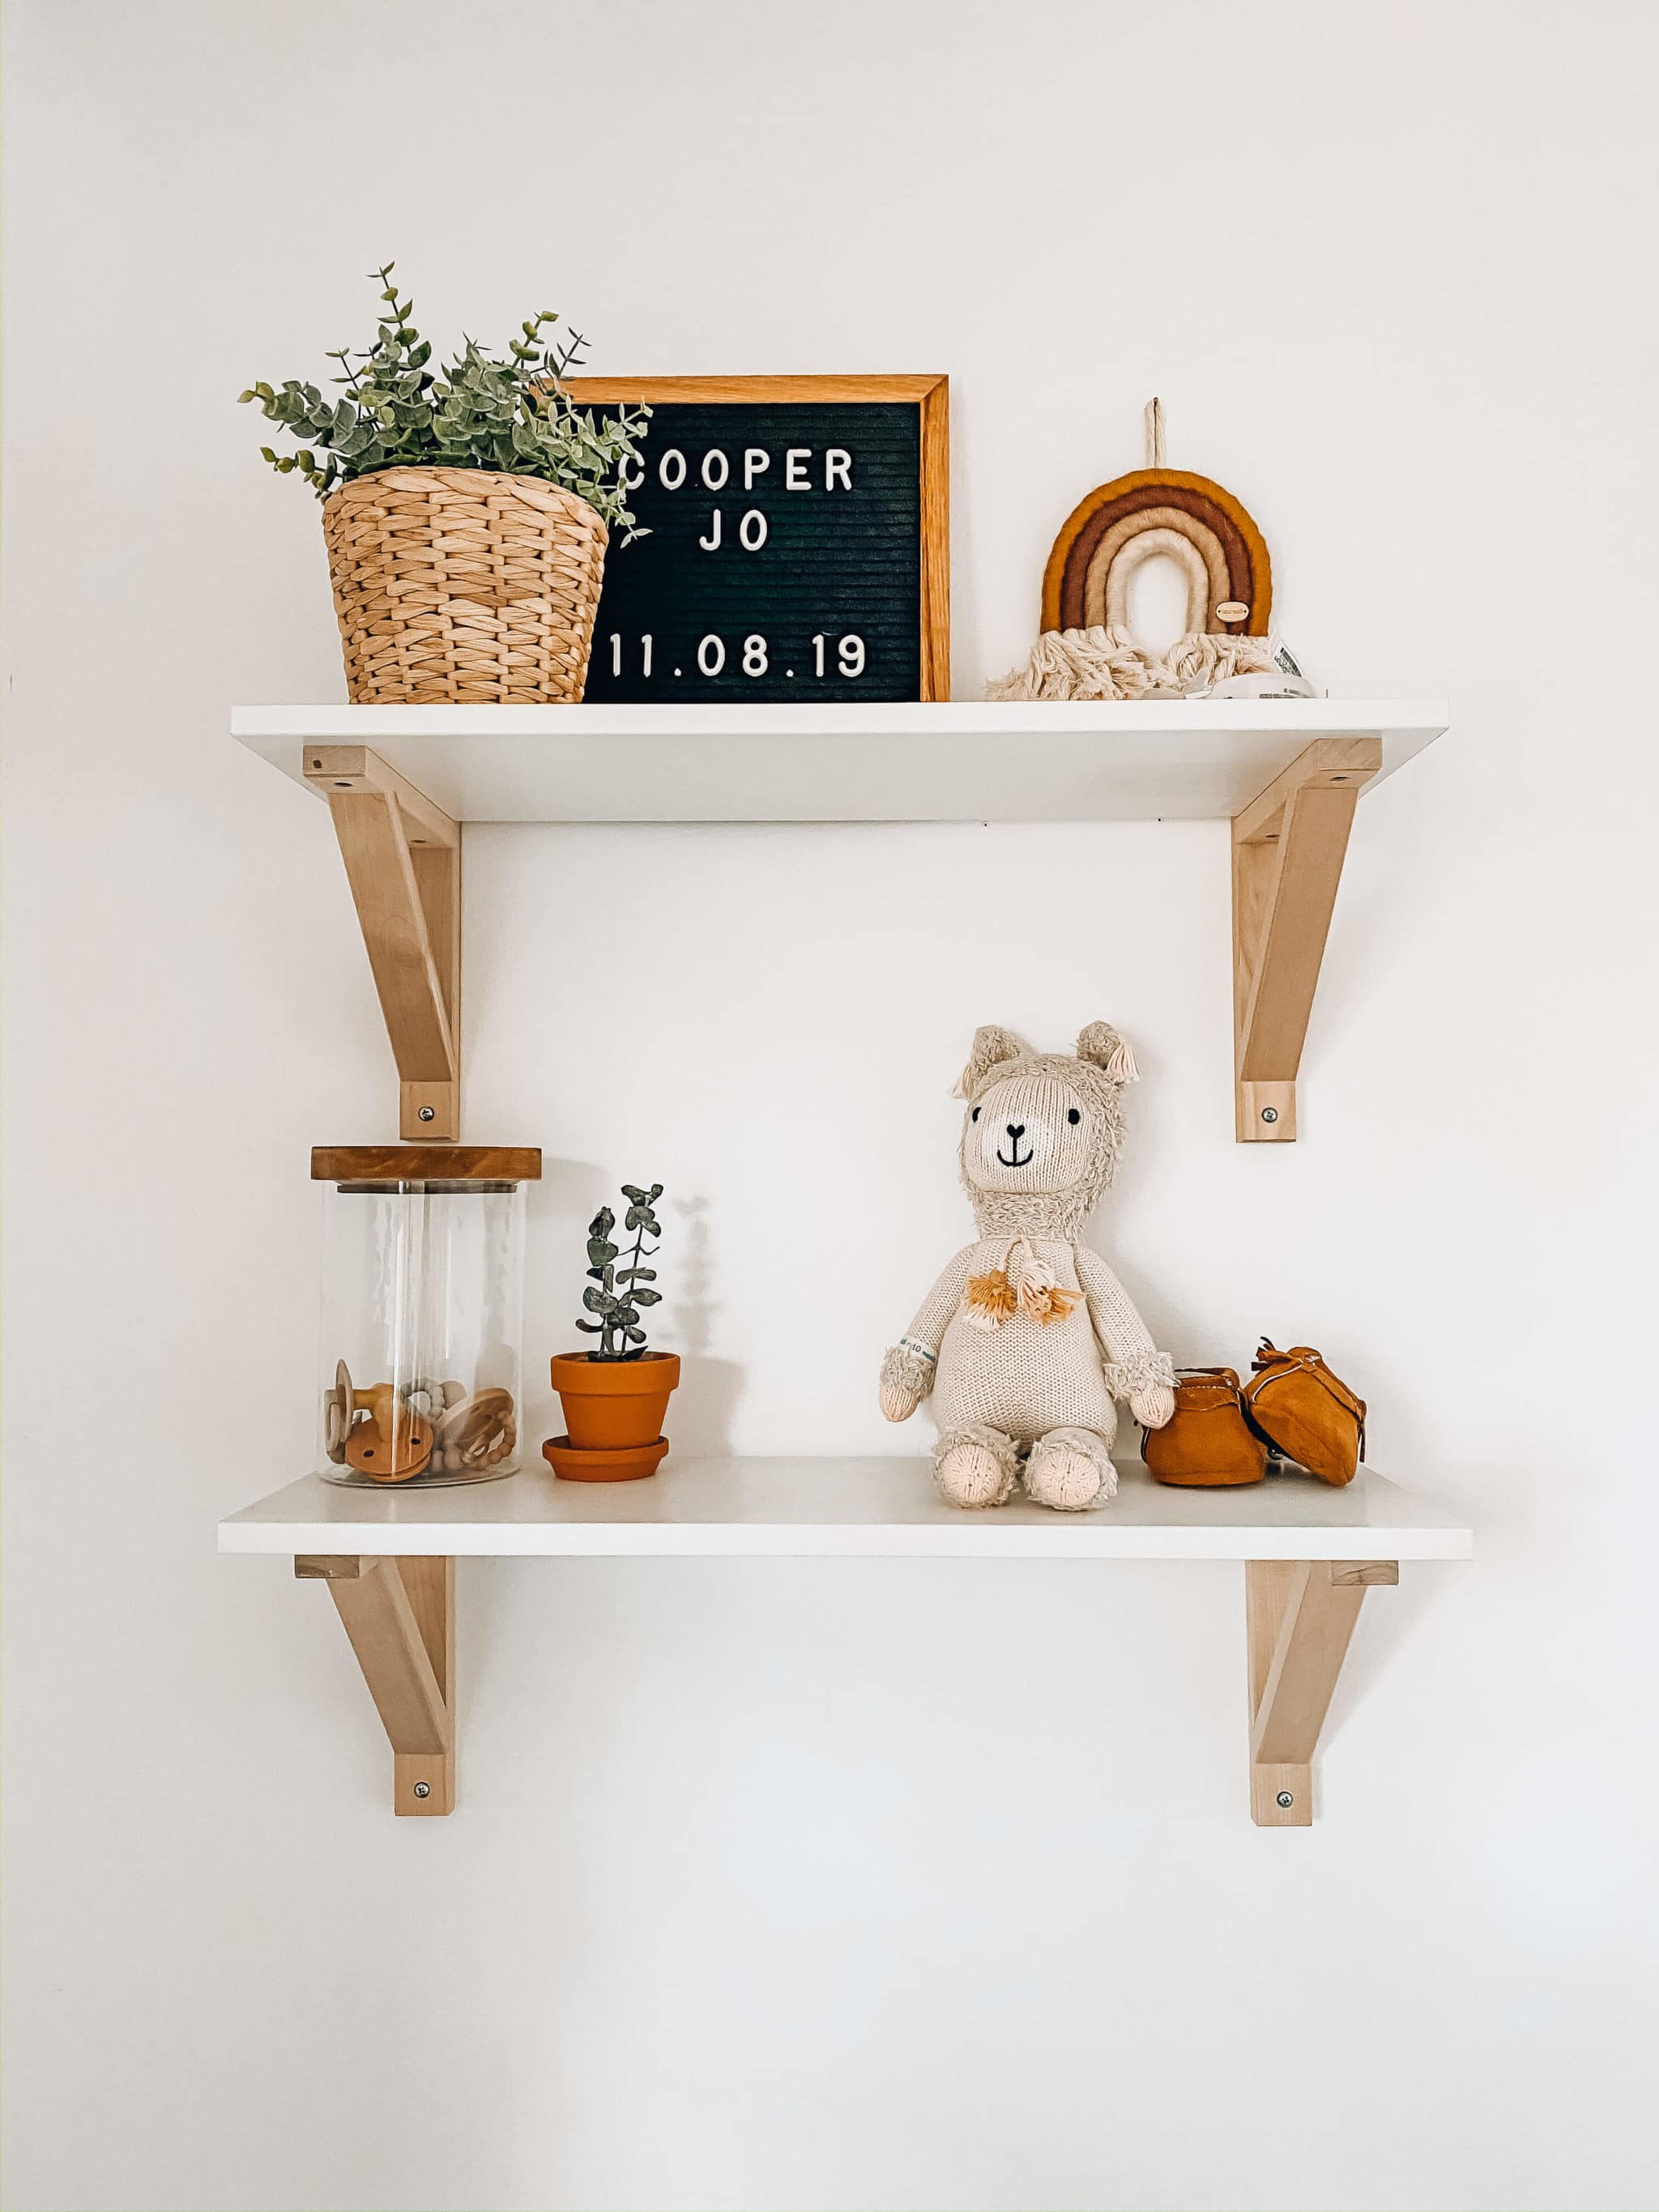 white and wood modern shelves for boho nursery from ikea with decor on top